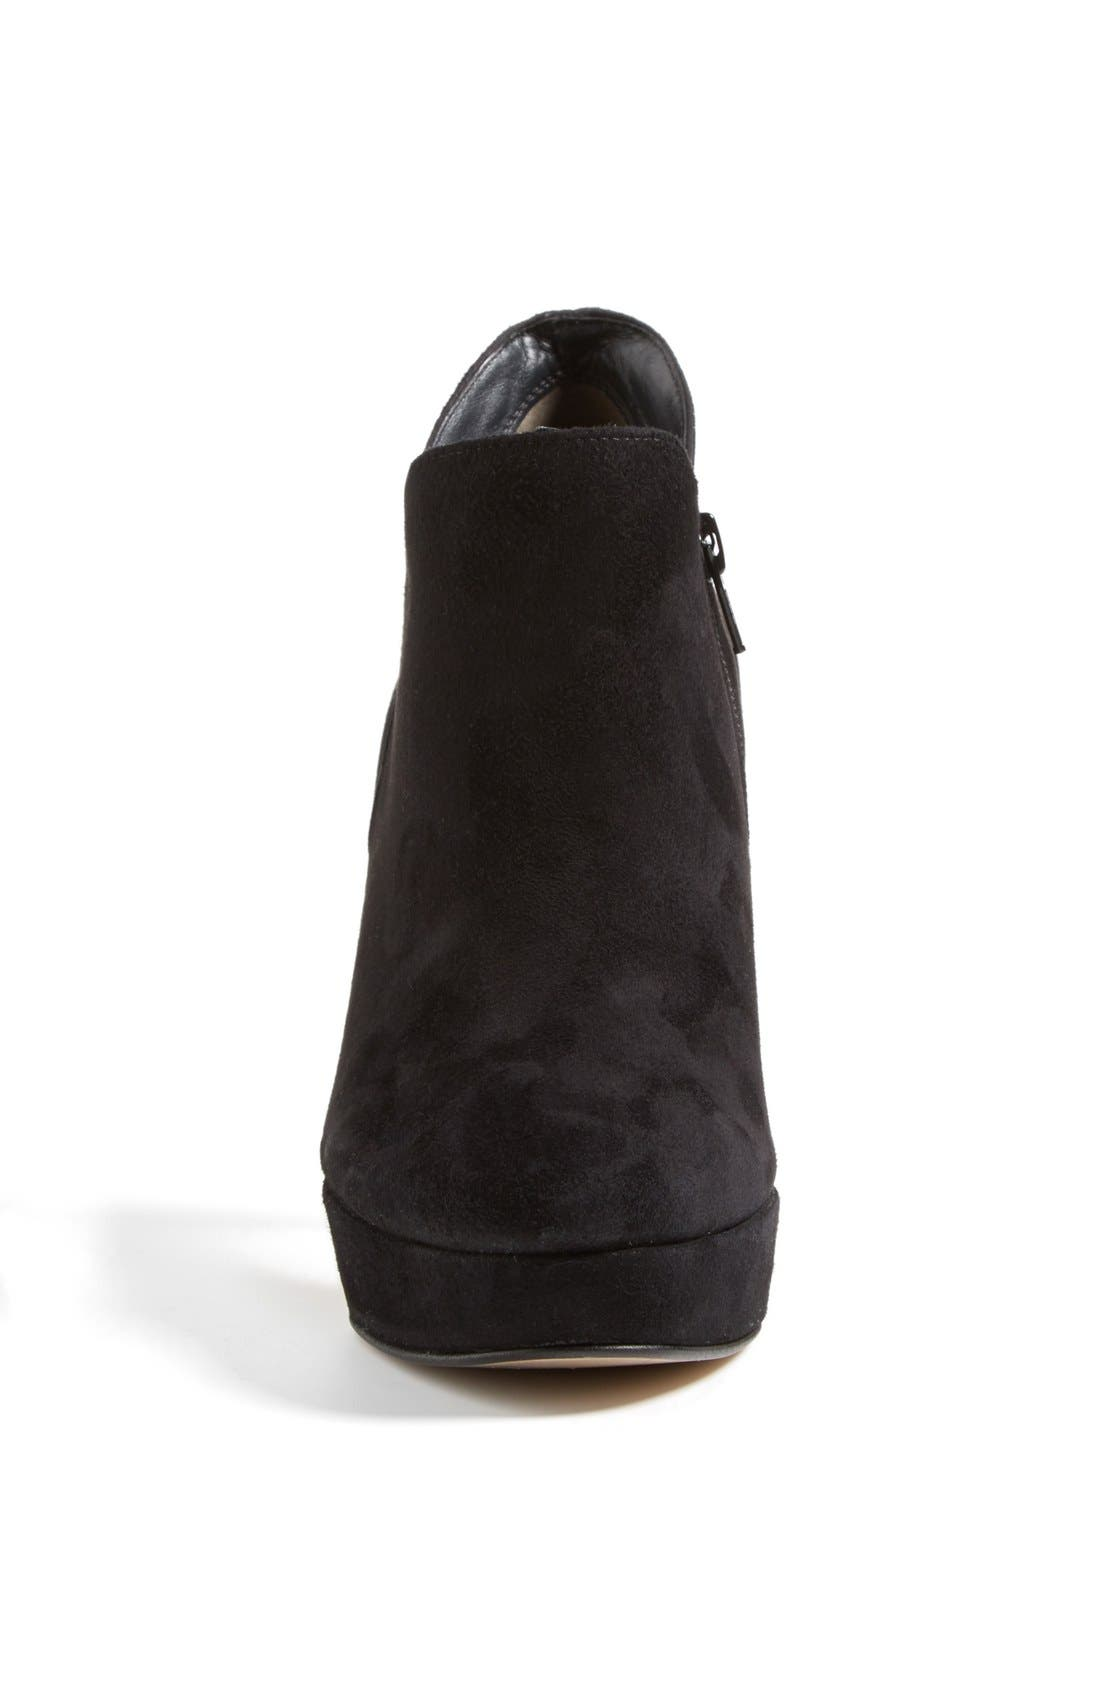 'Astaire' Suede Platform Bootie,                             Alternate thumbnail 4, color,                             002